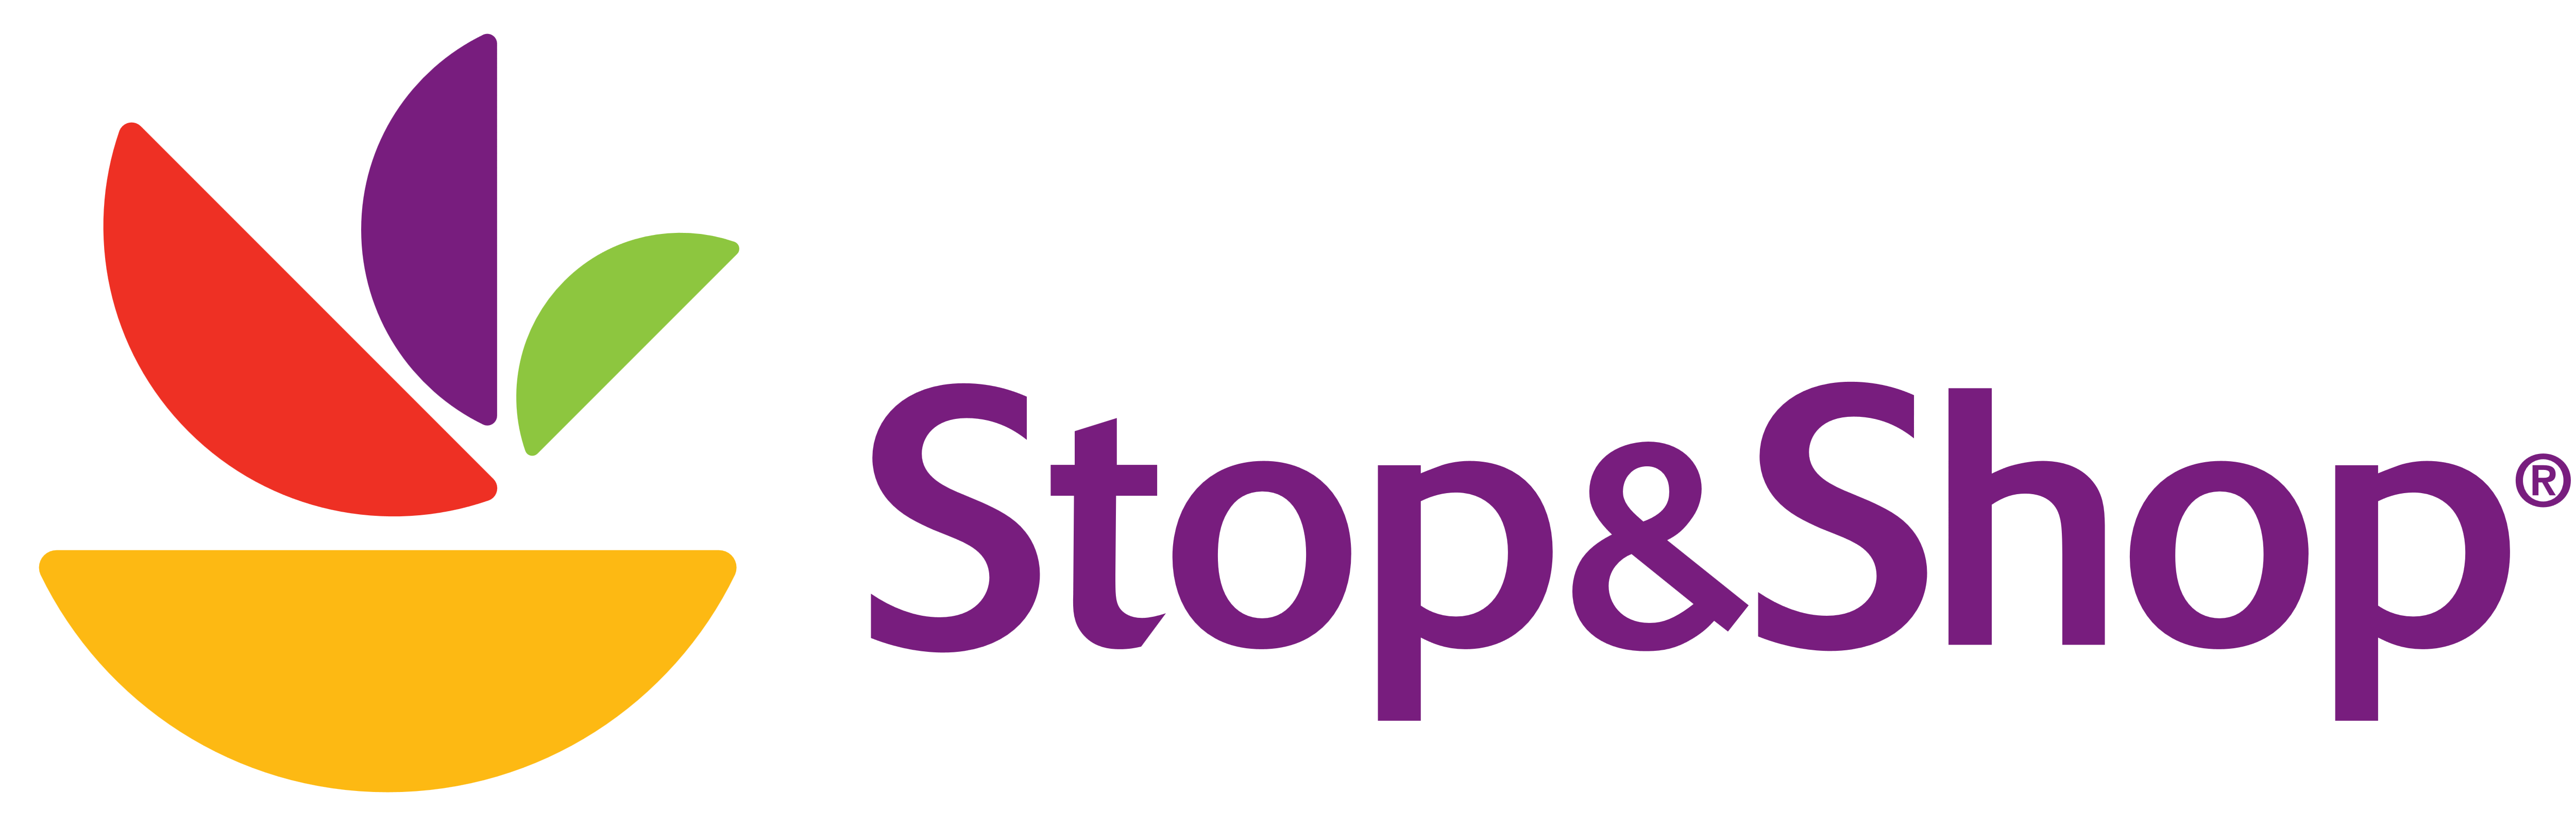 Current Stop & Shop fruitbowl logo, shared wit...